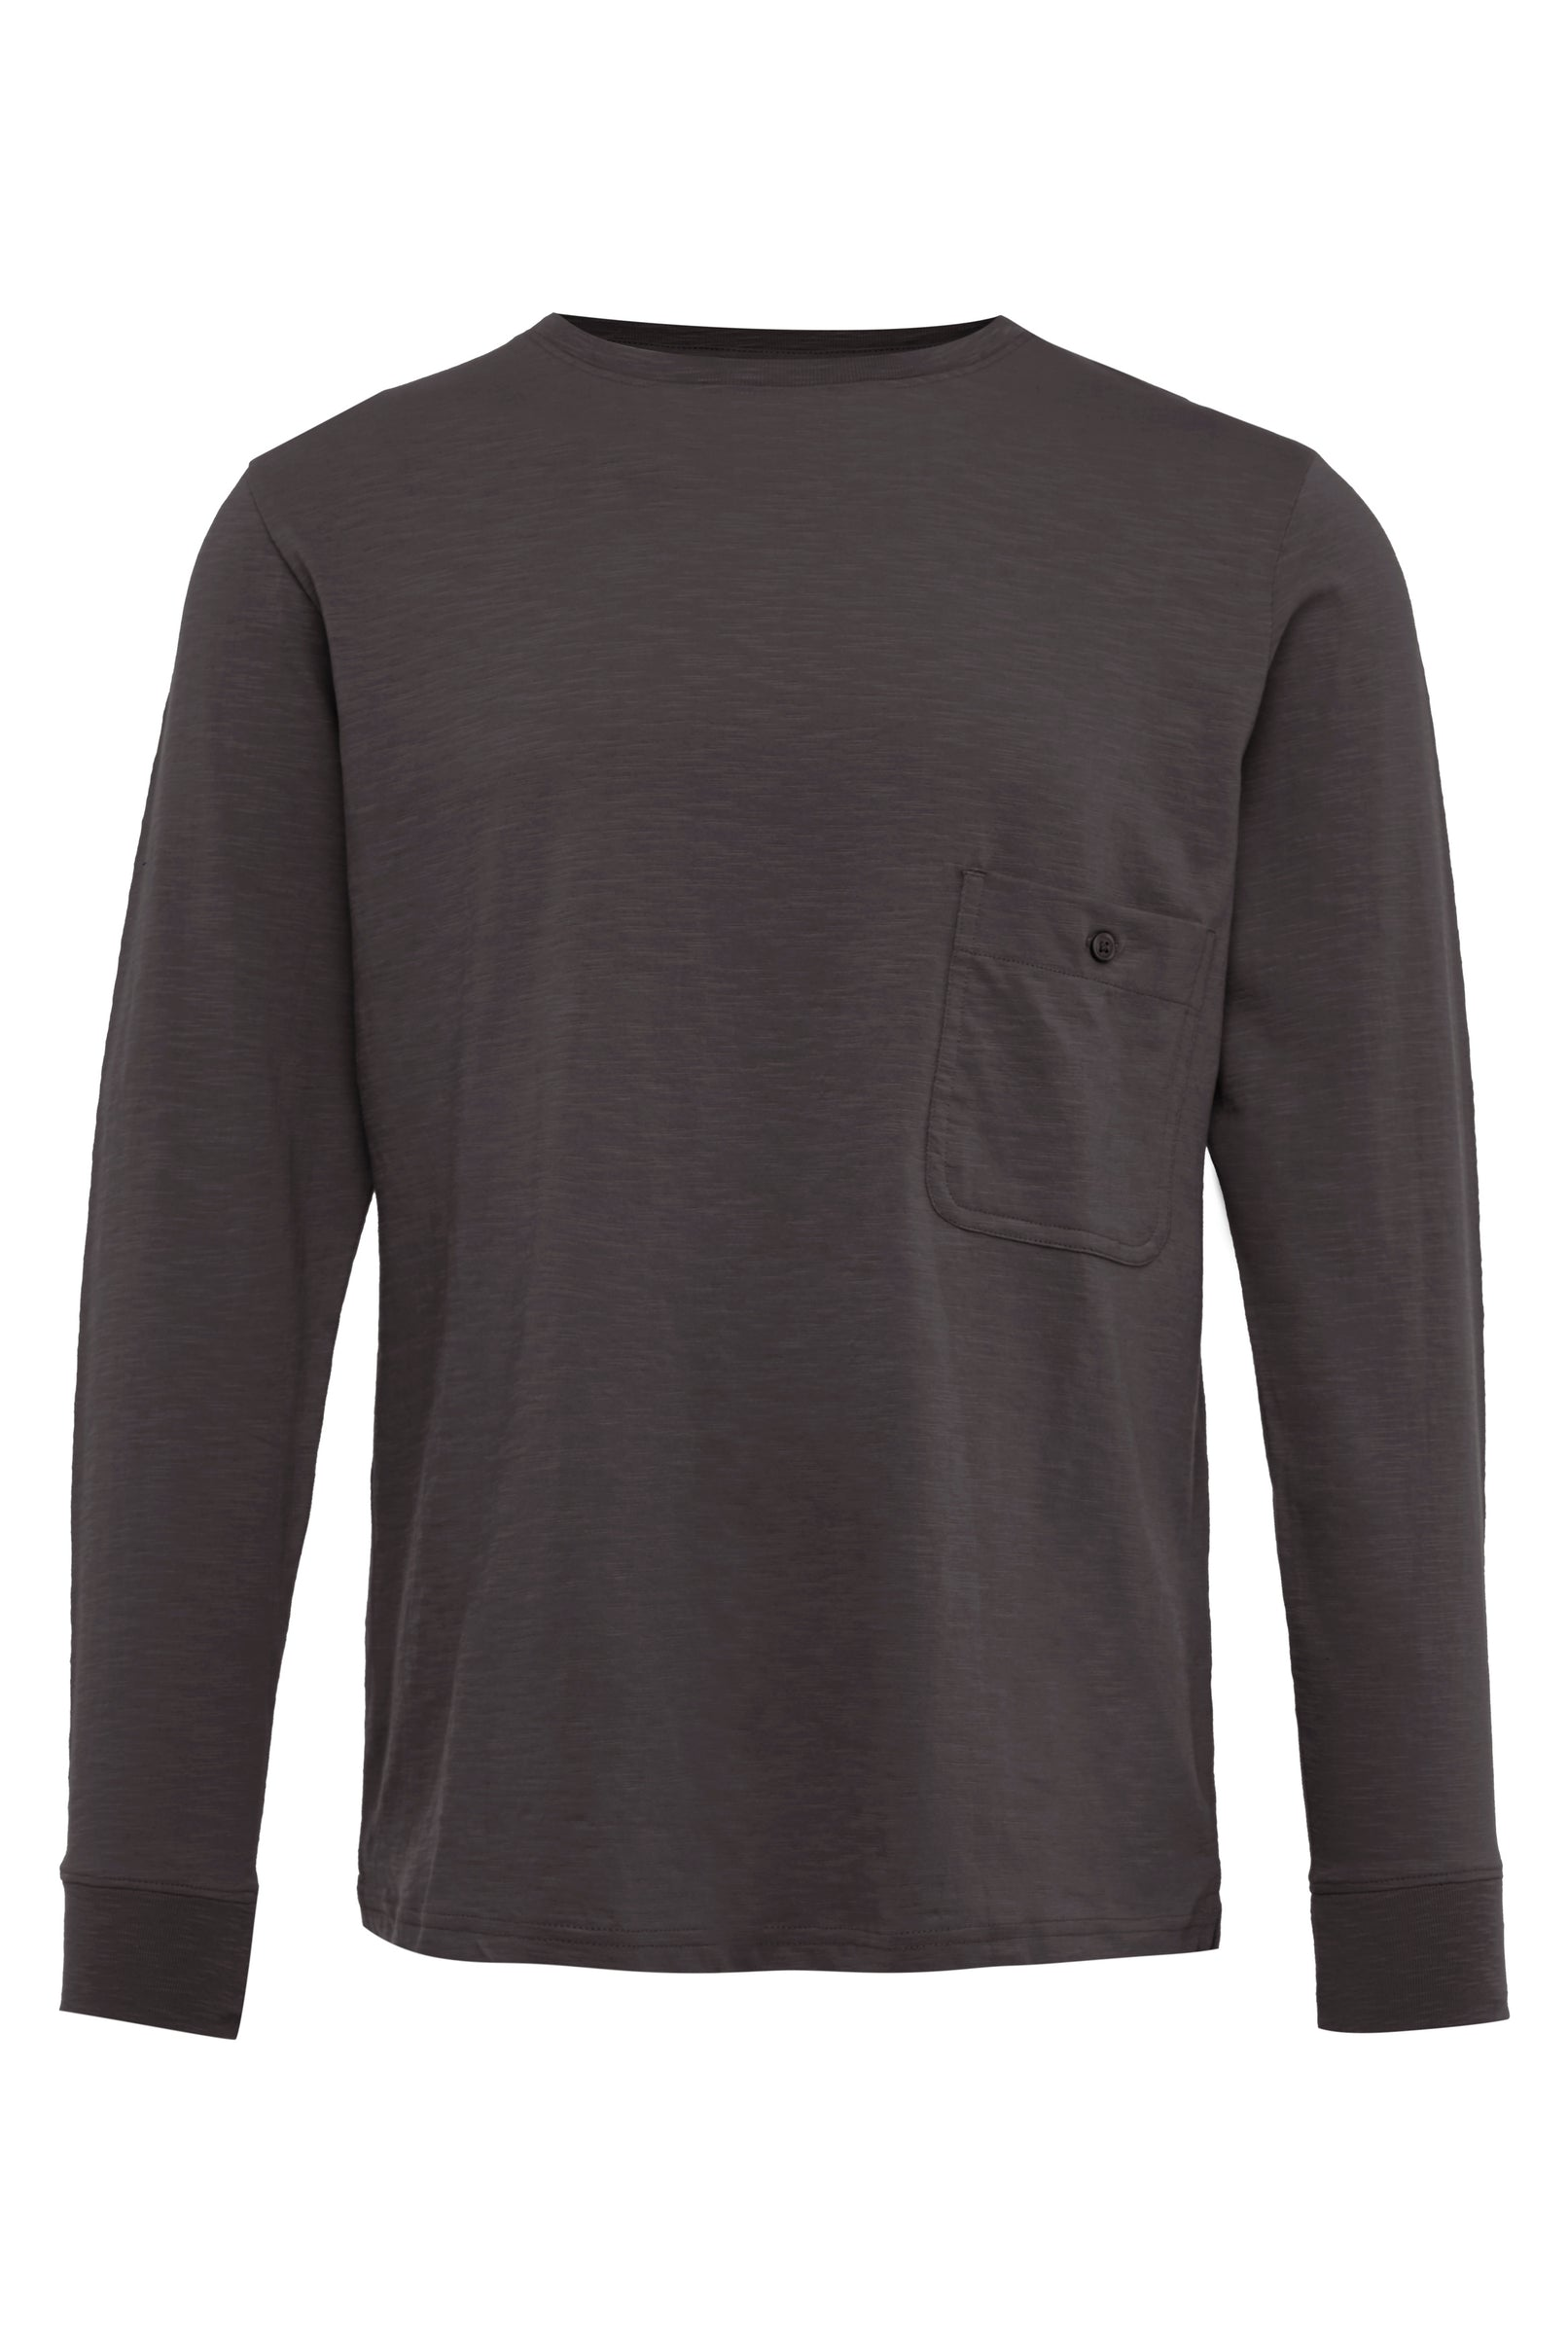 Charcoal Long Sleeve Cotton T-Shirt